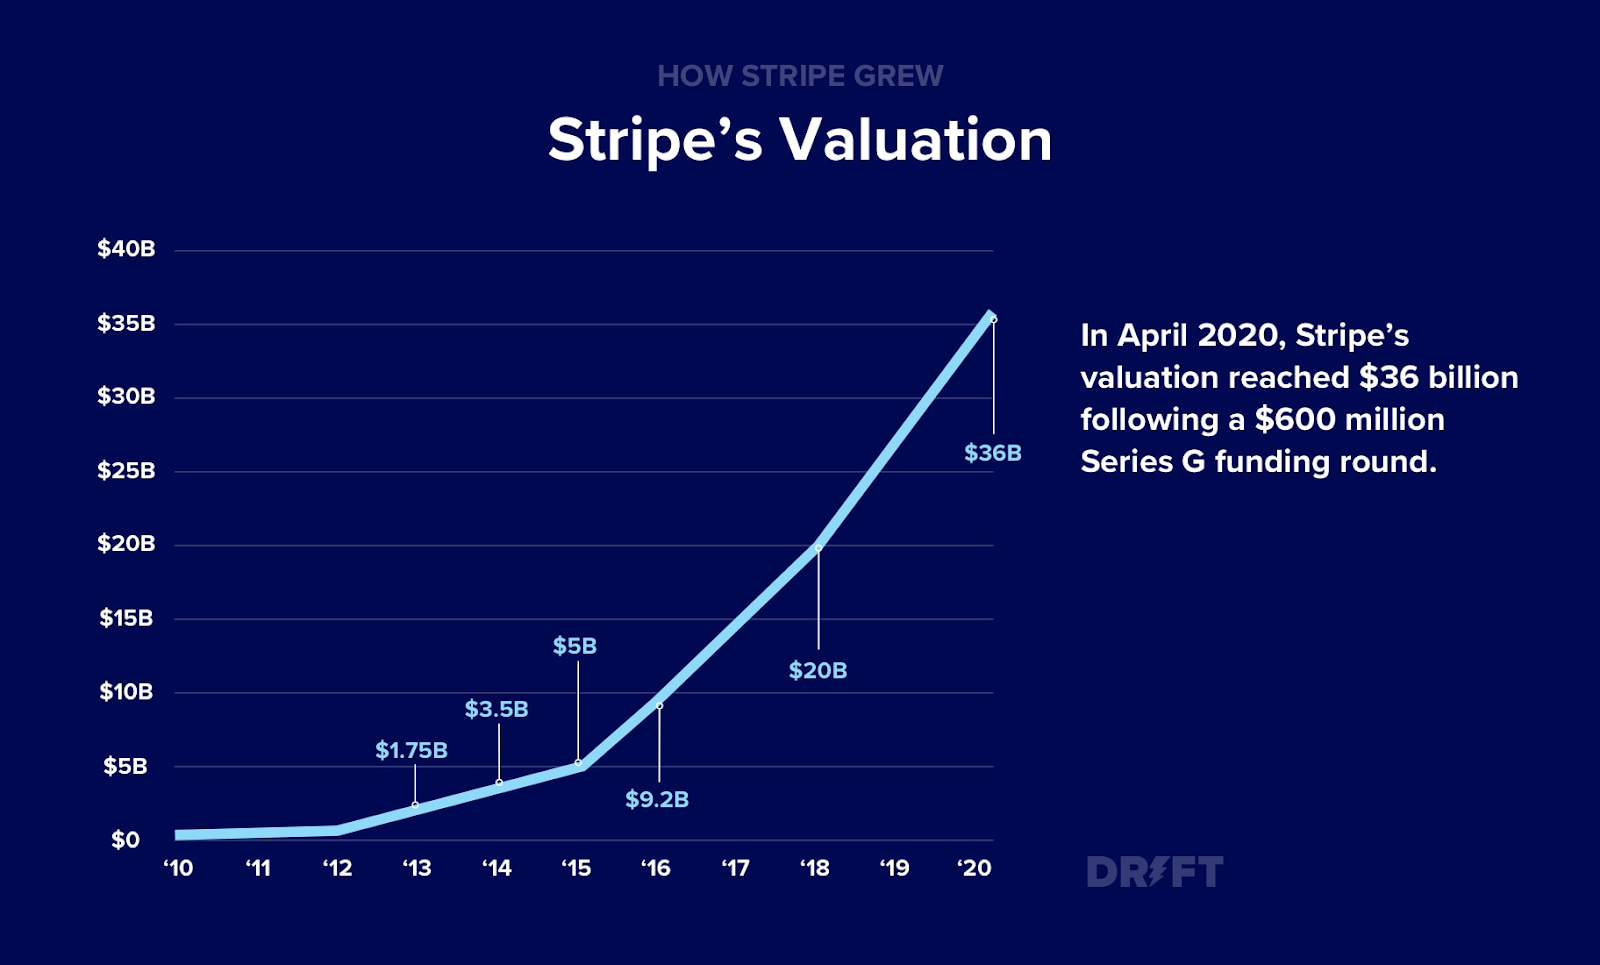 The valuation of Stripe over the years